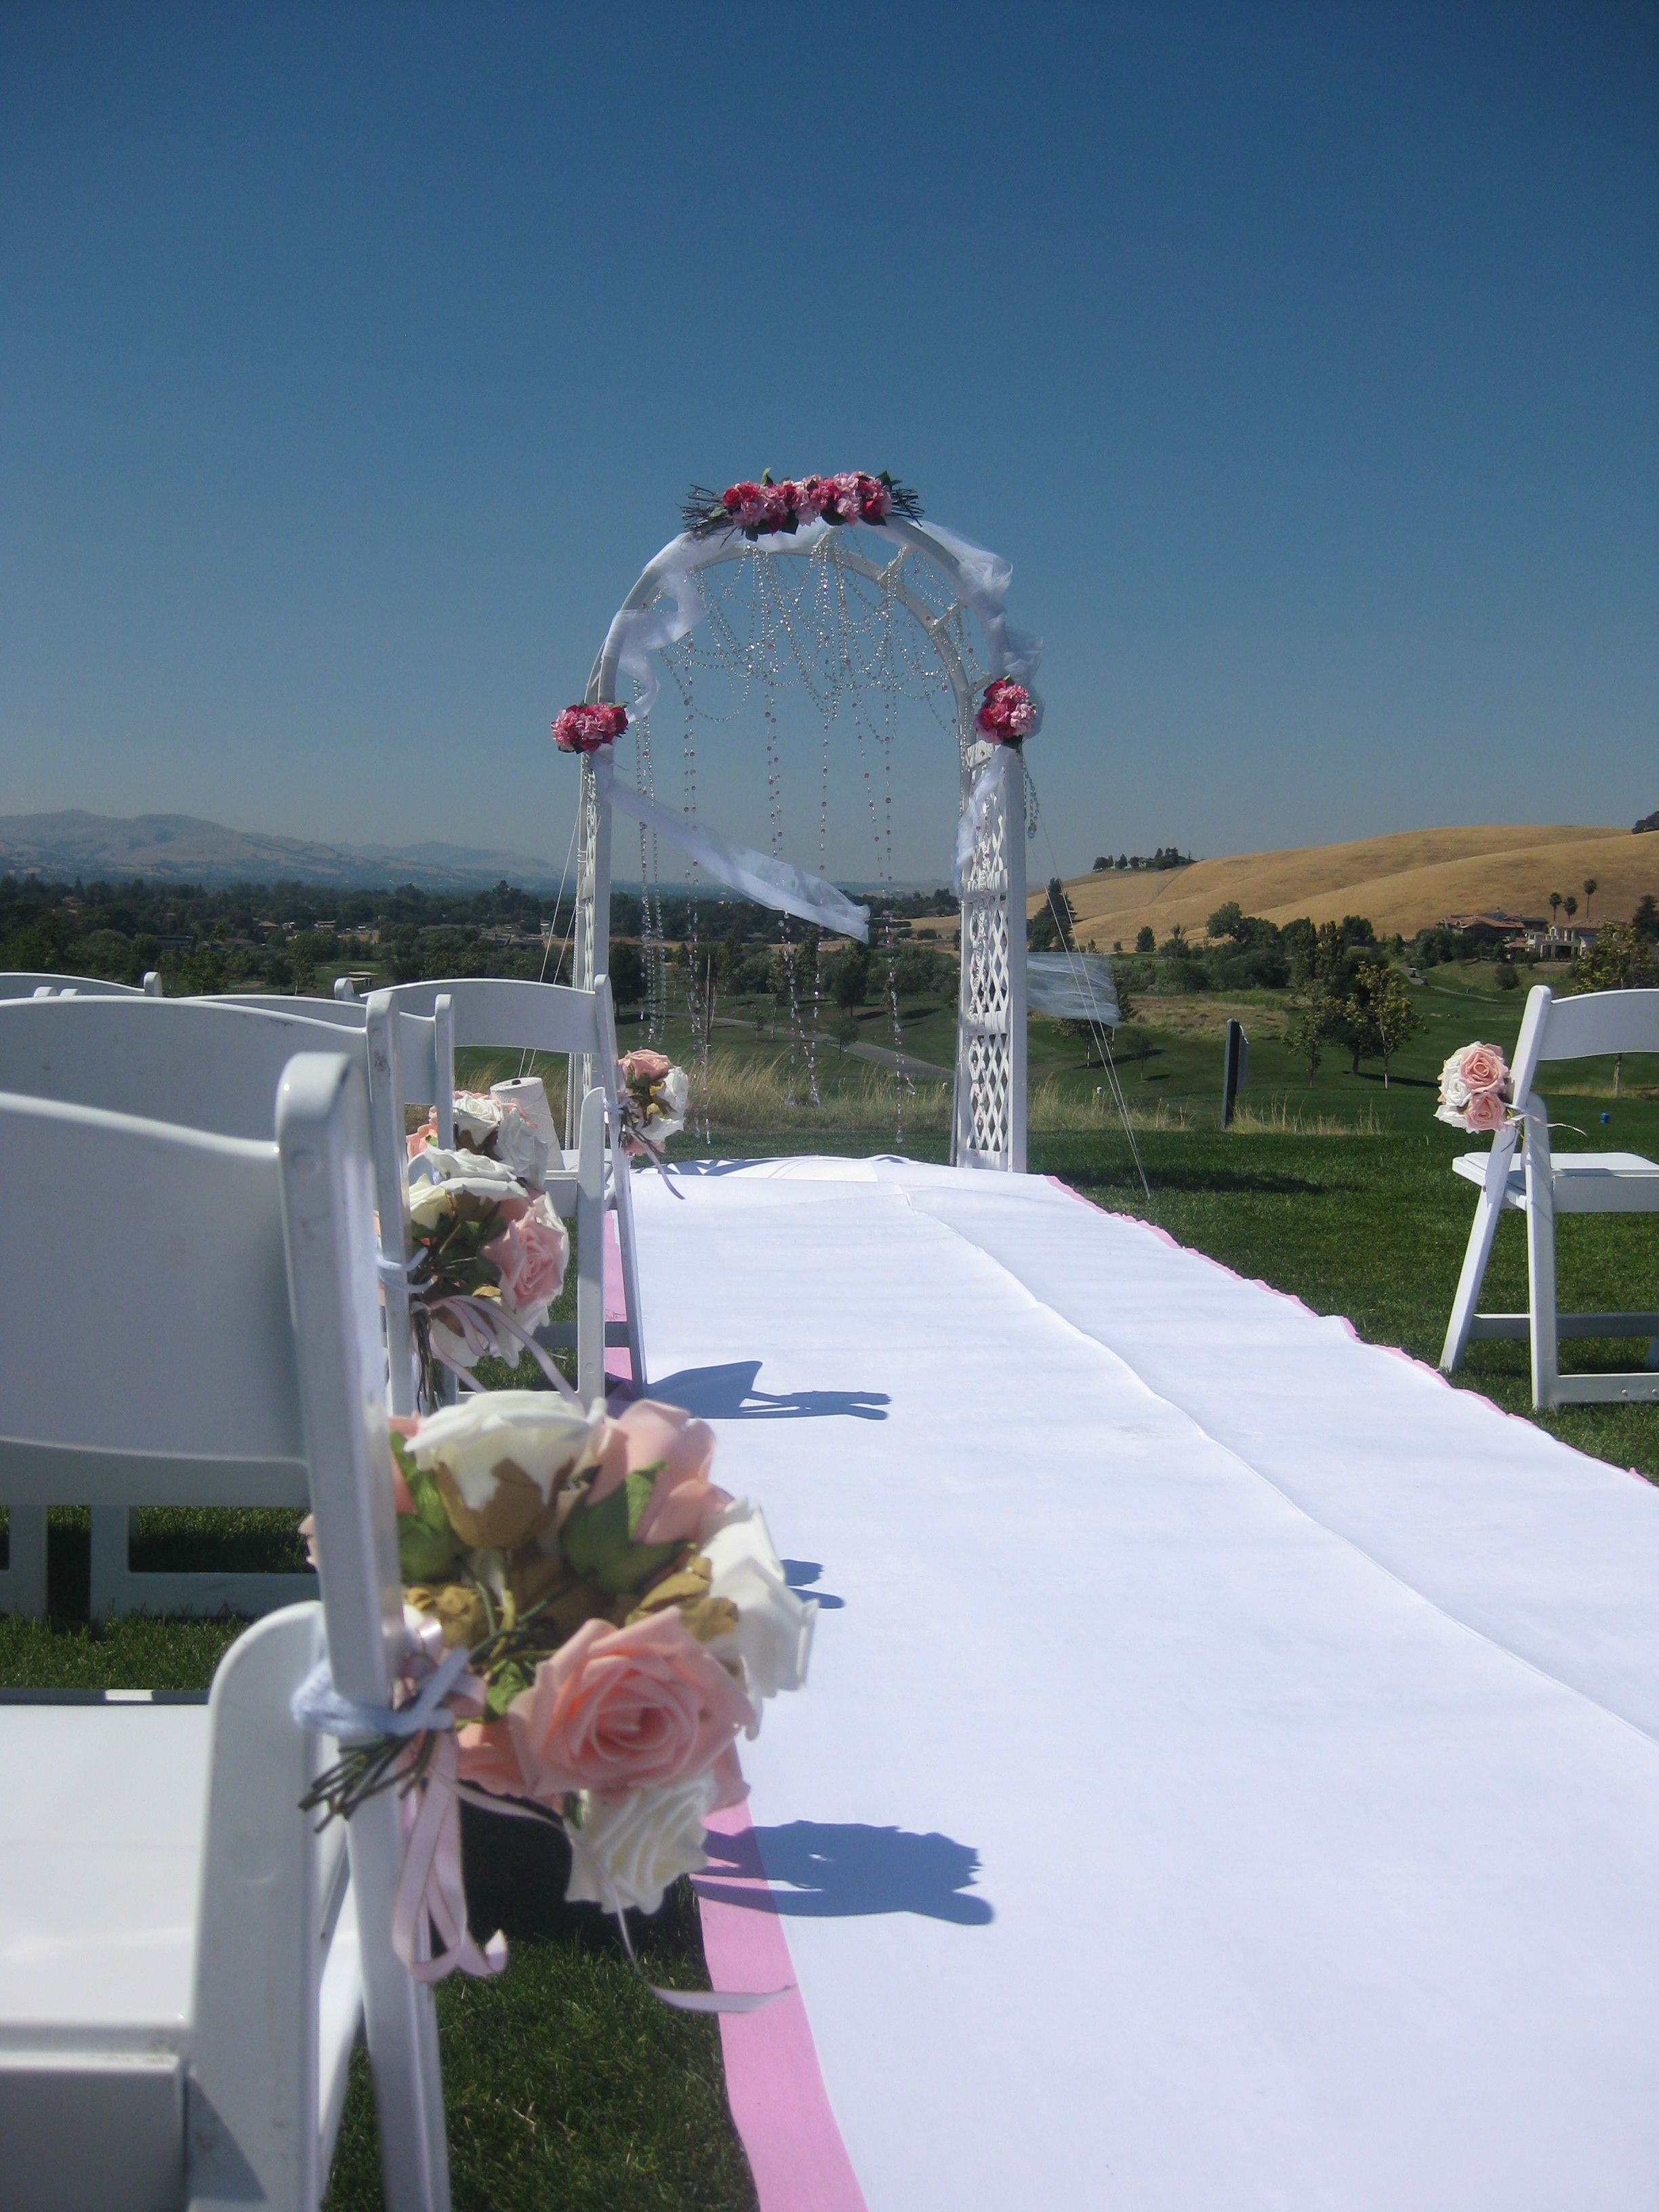 Add a little color to your traditional aisle runner.  #callippepreserve #weddings